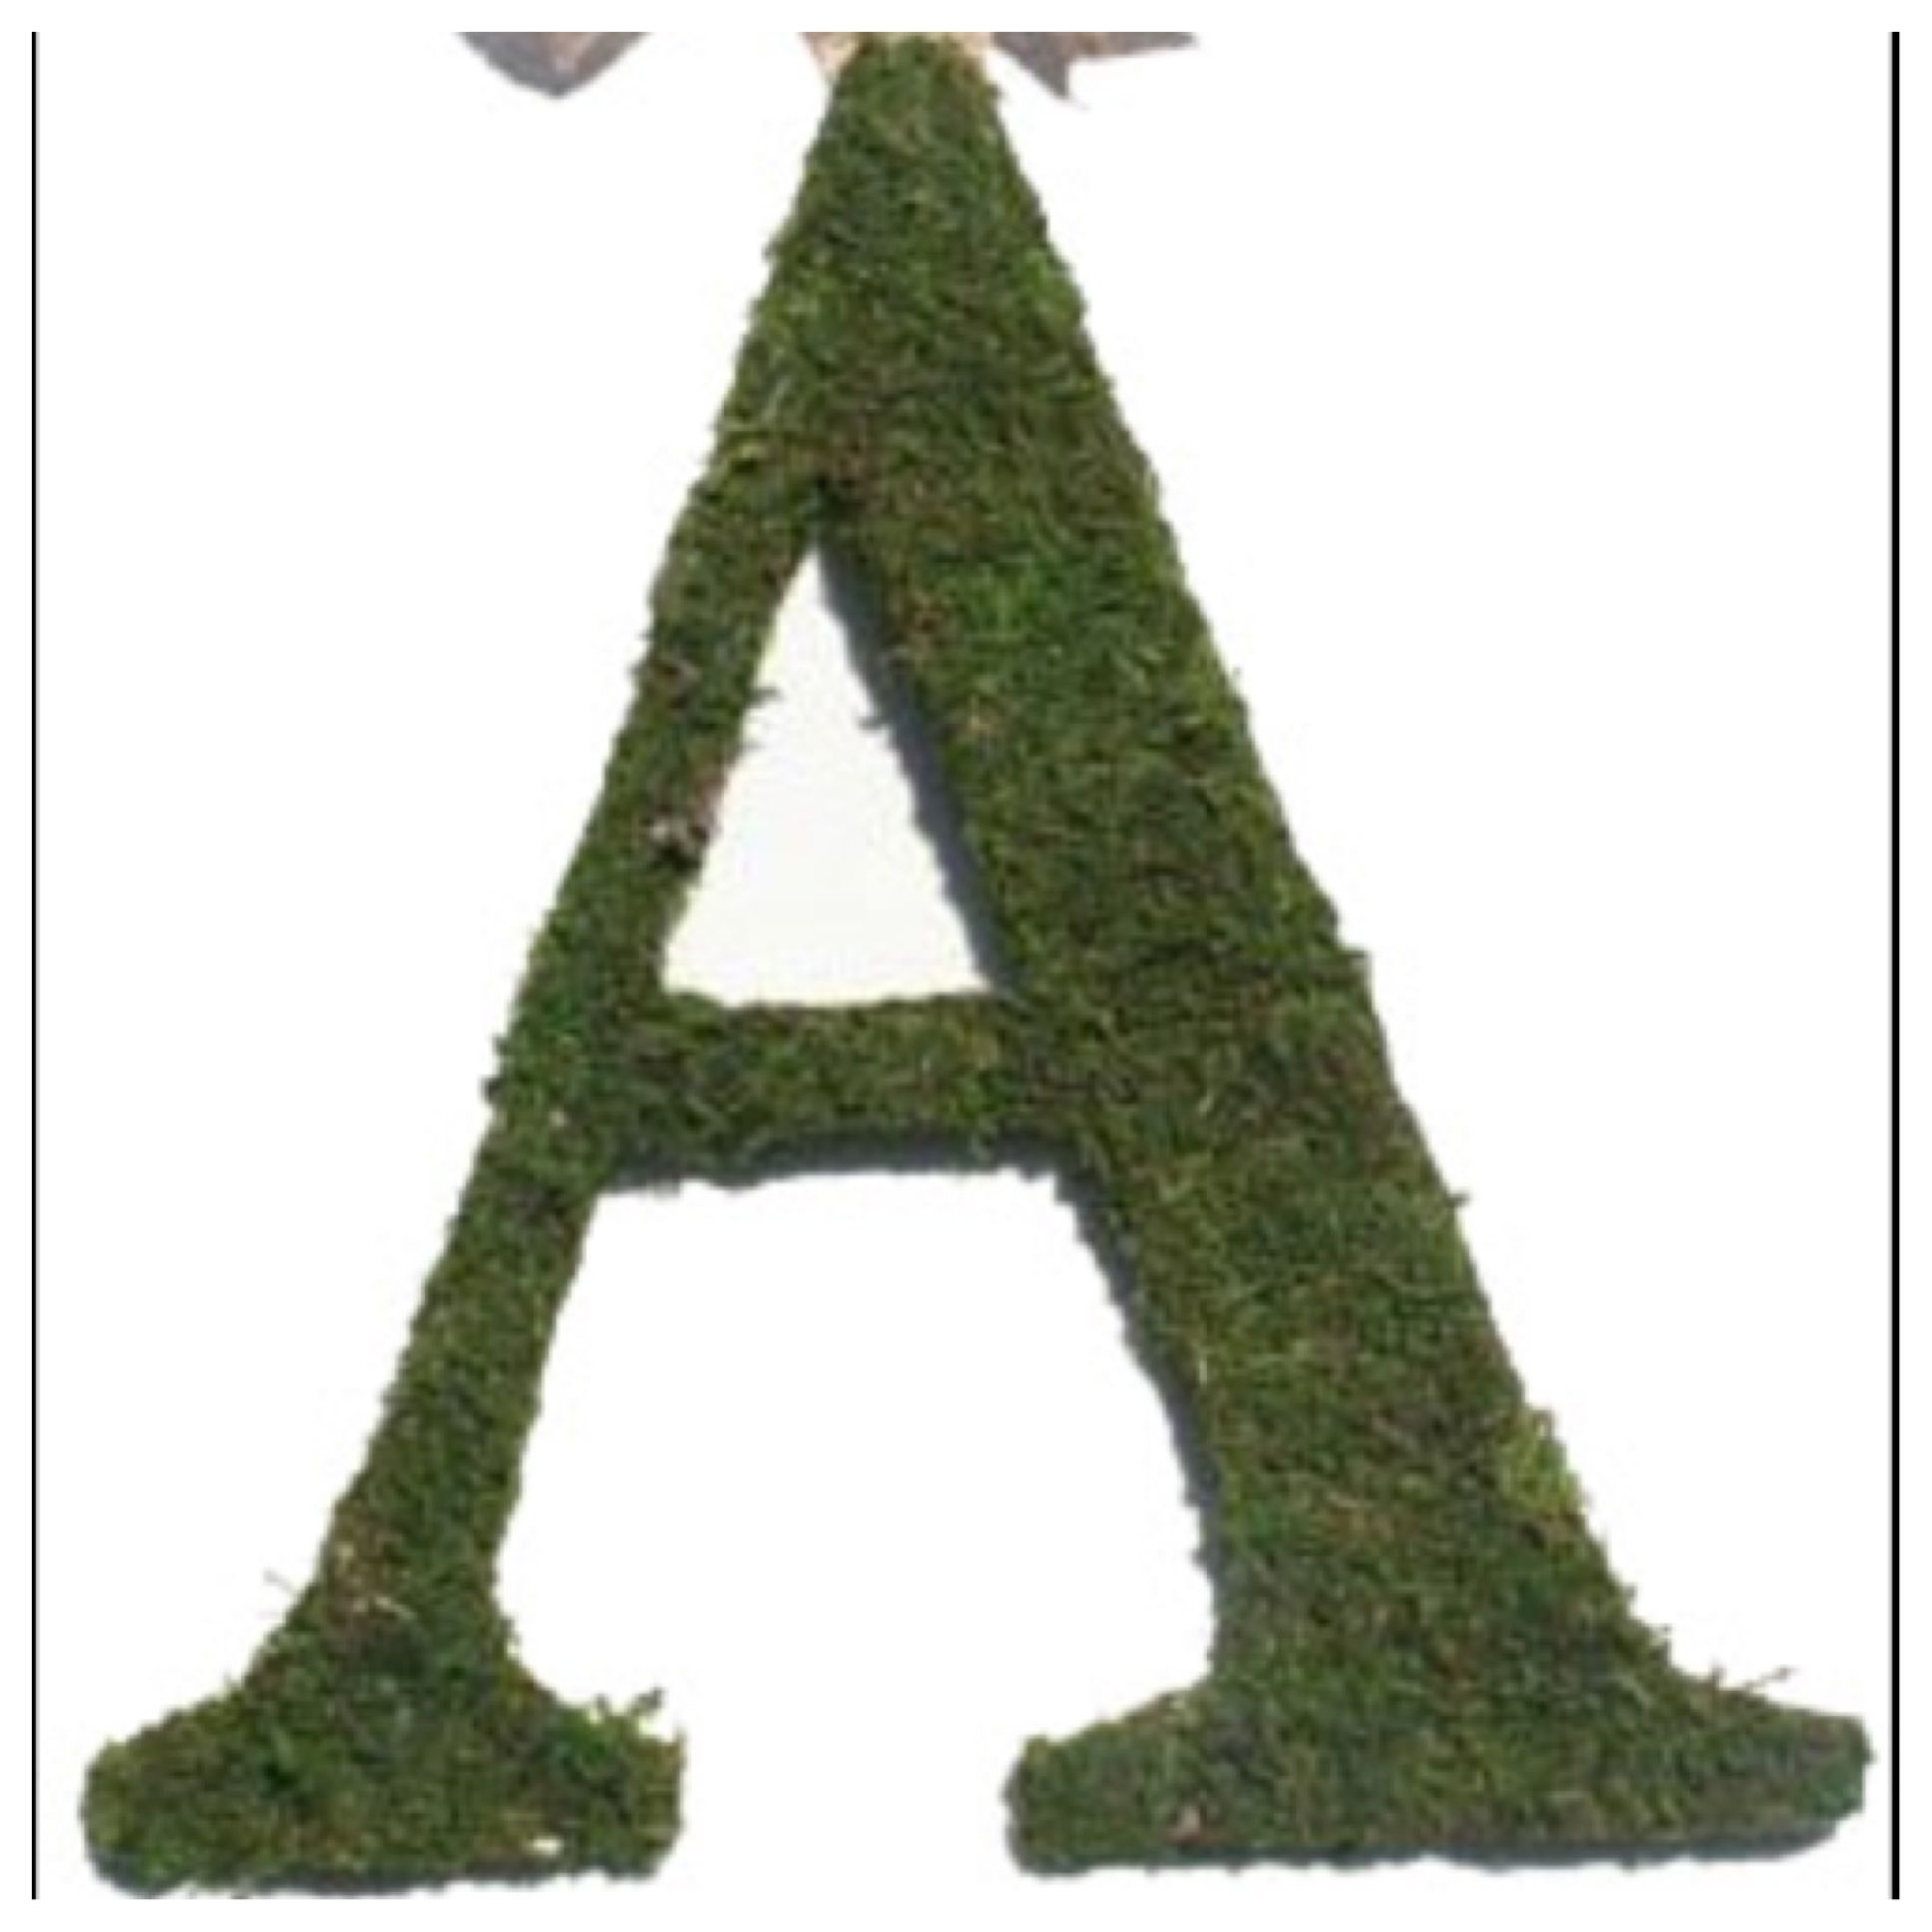 Moss letters for your door or wall!